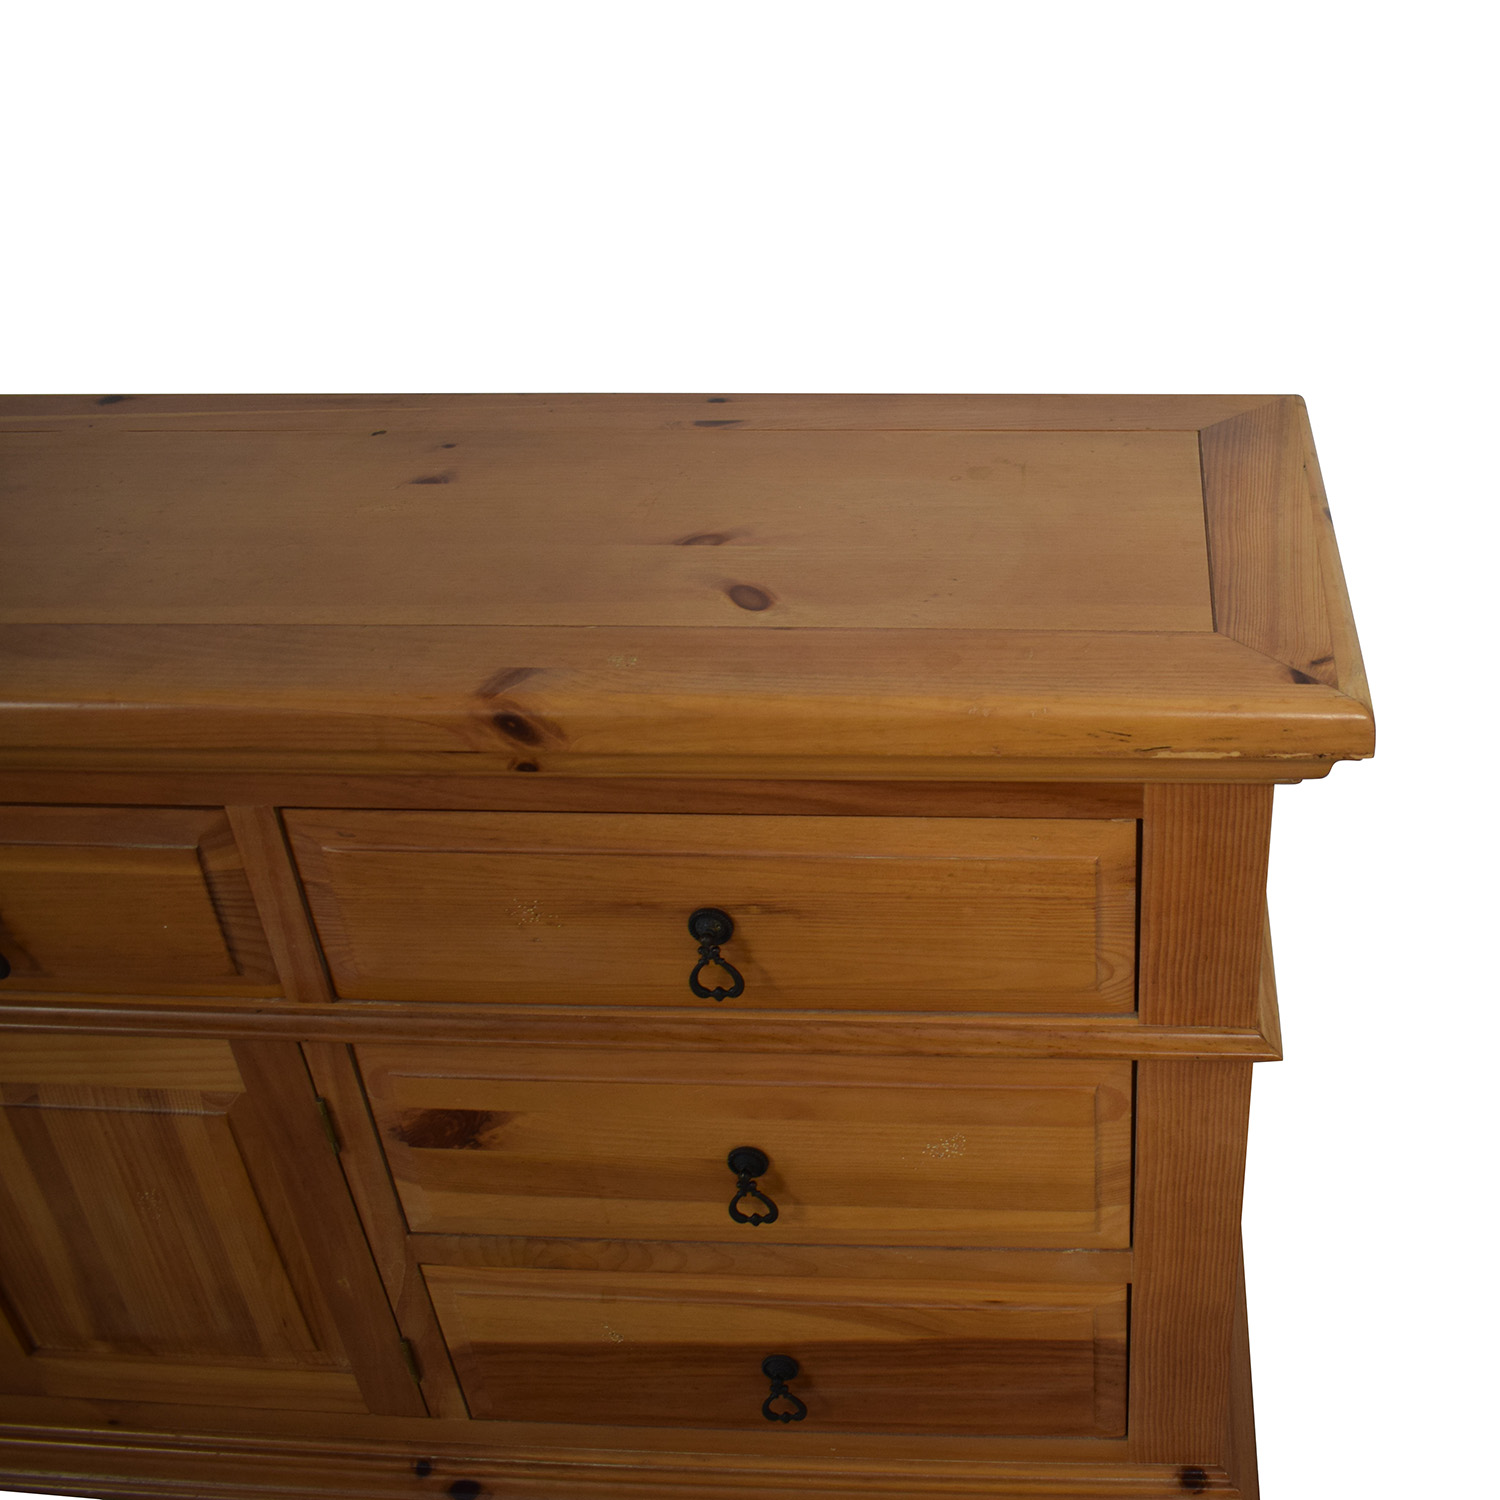 Broyhill Furniture Broyhill Furniture Wood Dresser with Cabinet for sale